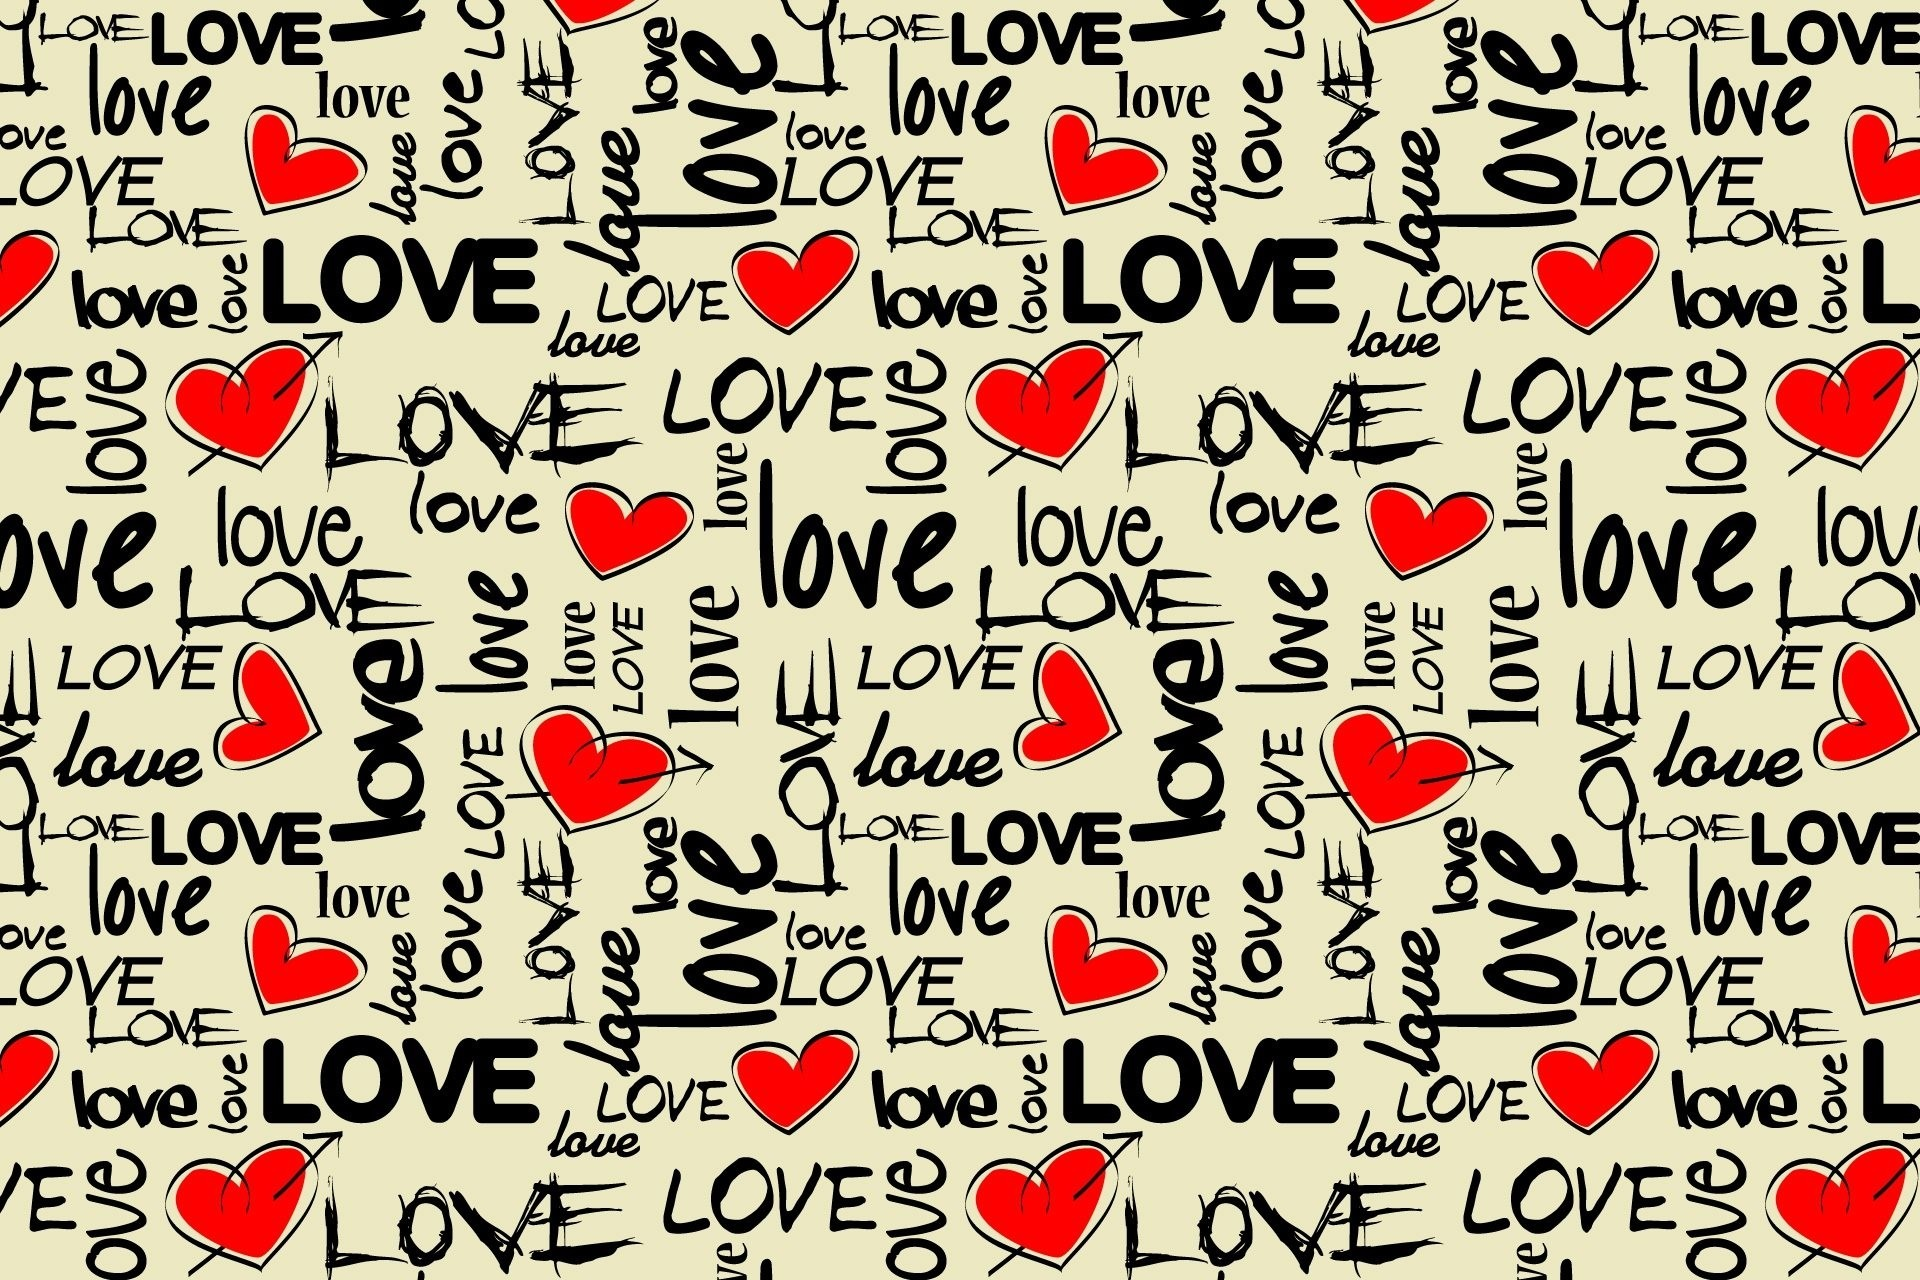 love words wallpapers,heart,font,text,pattern,design